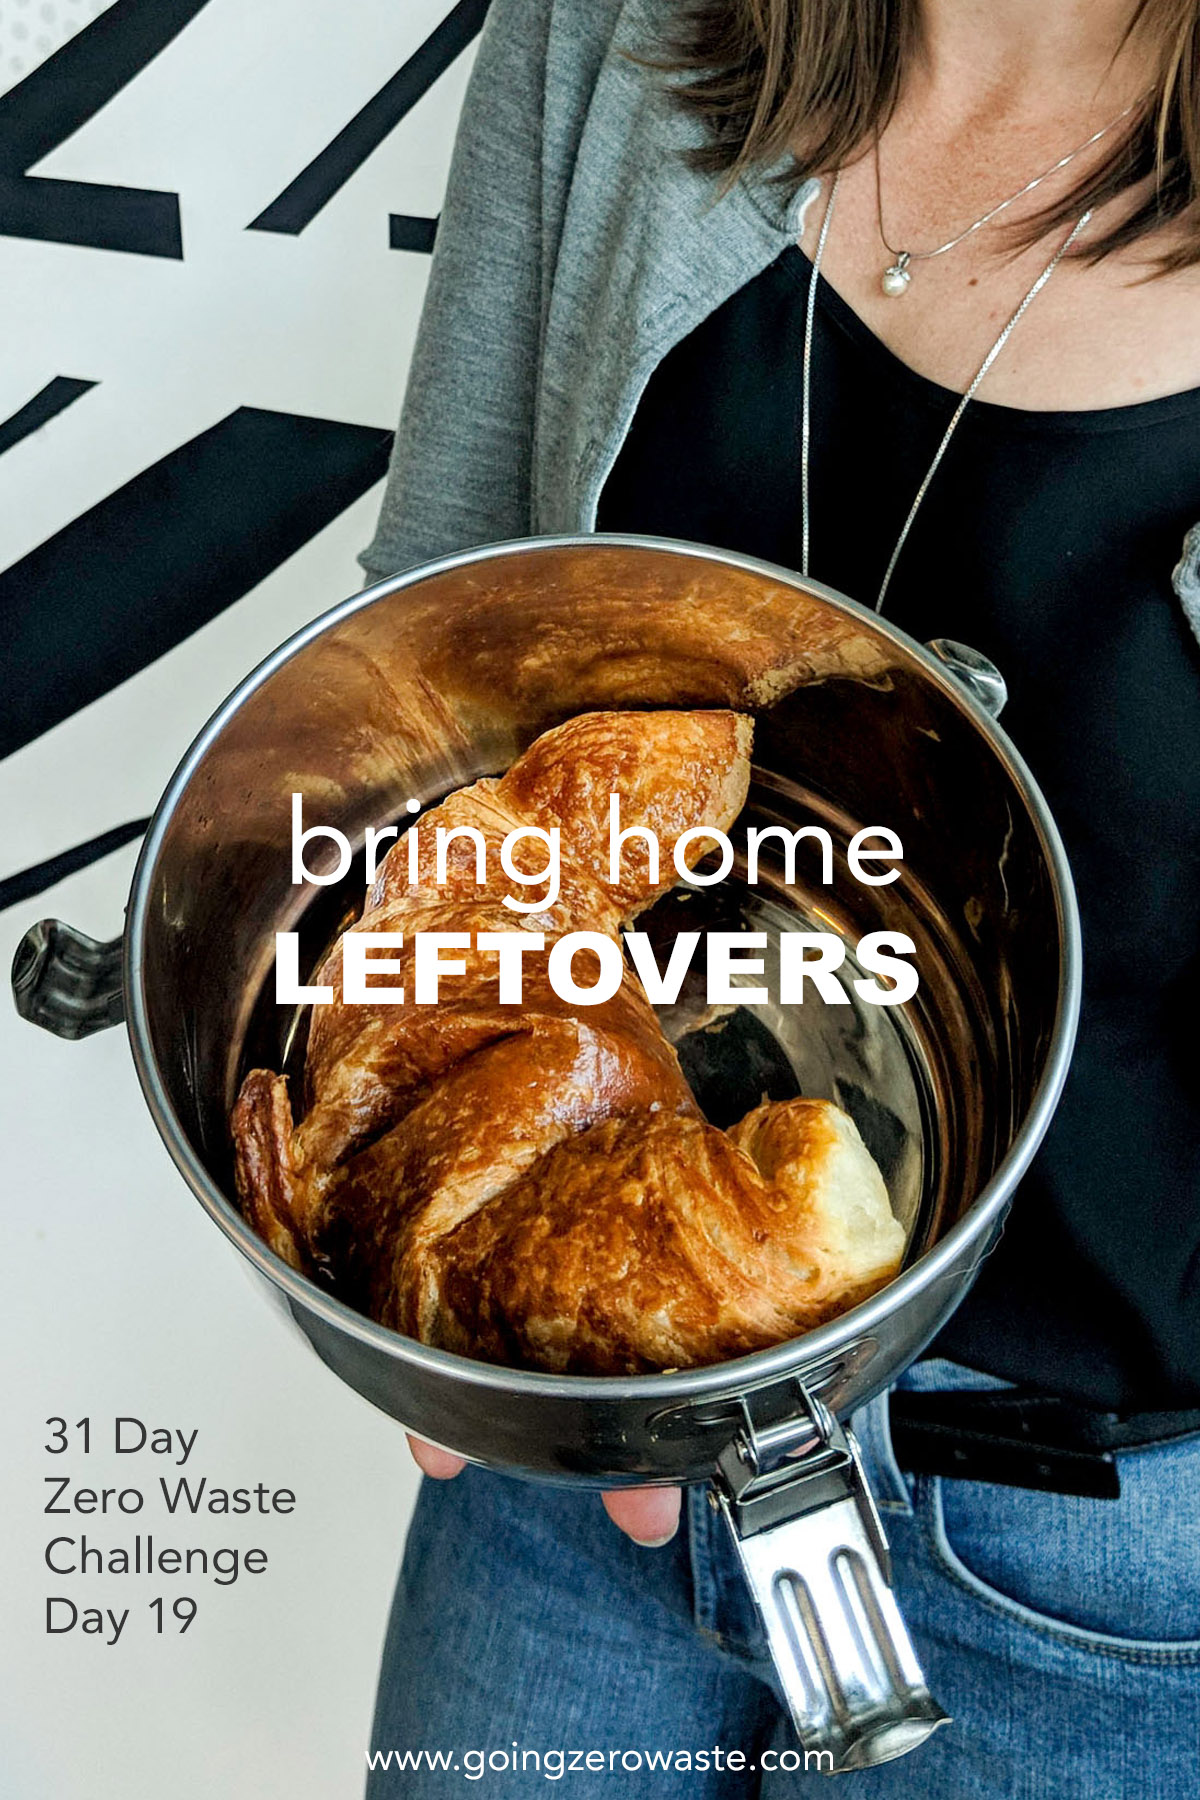 Bring home leftovers day 19 of the zero waste challenge from www.goingzerowaste.com #zerowastechallenge #leftovers #bringyourowncontainer